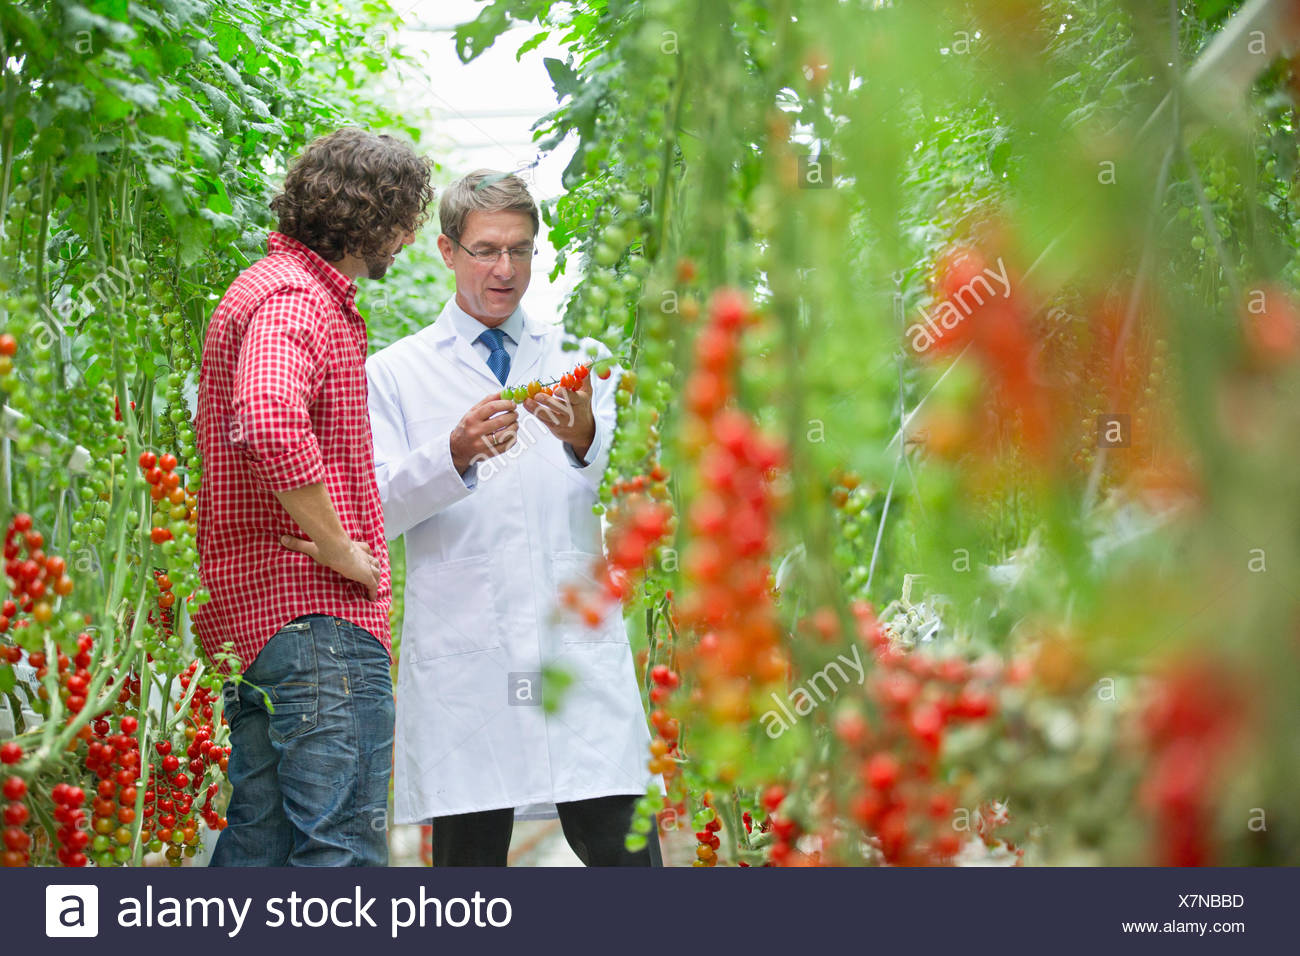 Food scientist and grower inspecting tomatoes ripening on vine in greenhouse - Stock Image